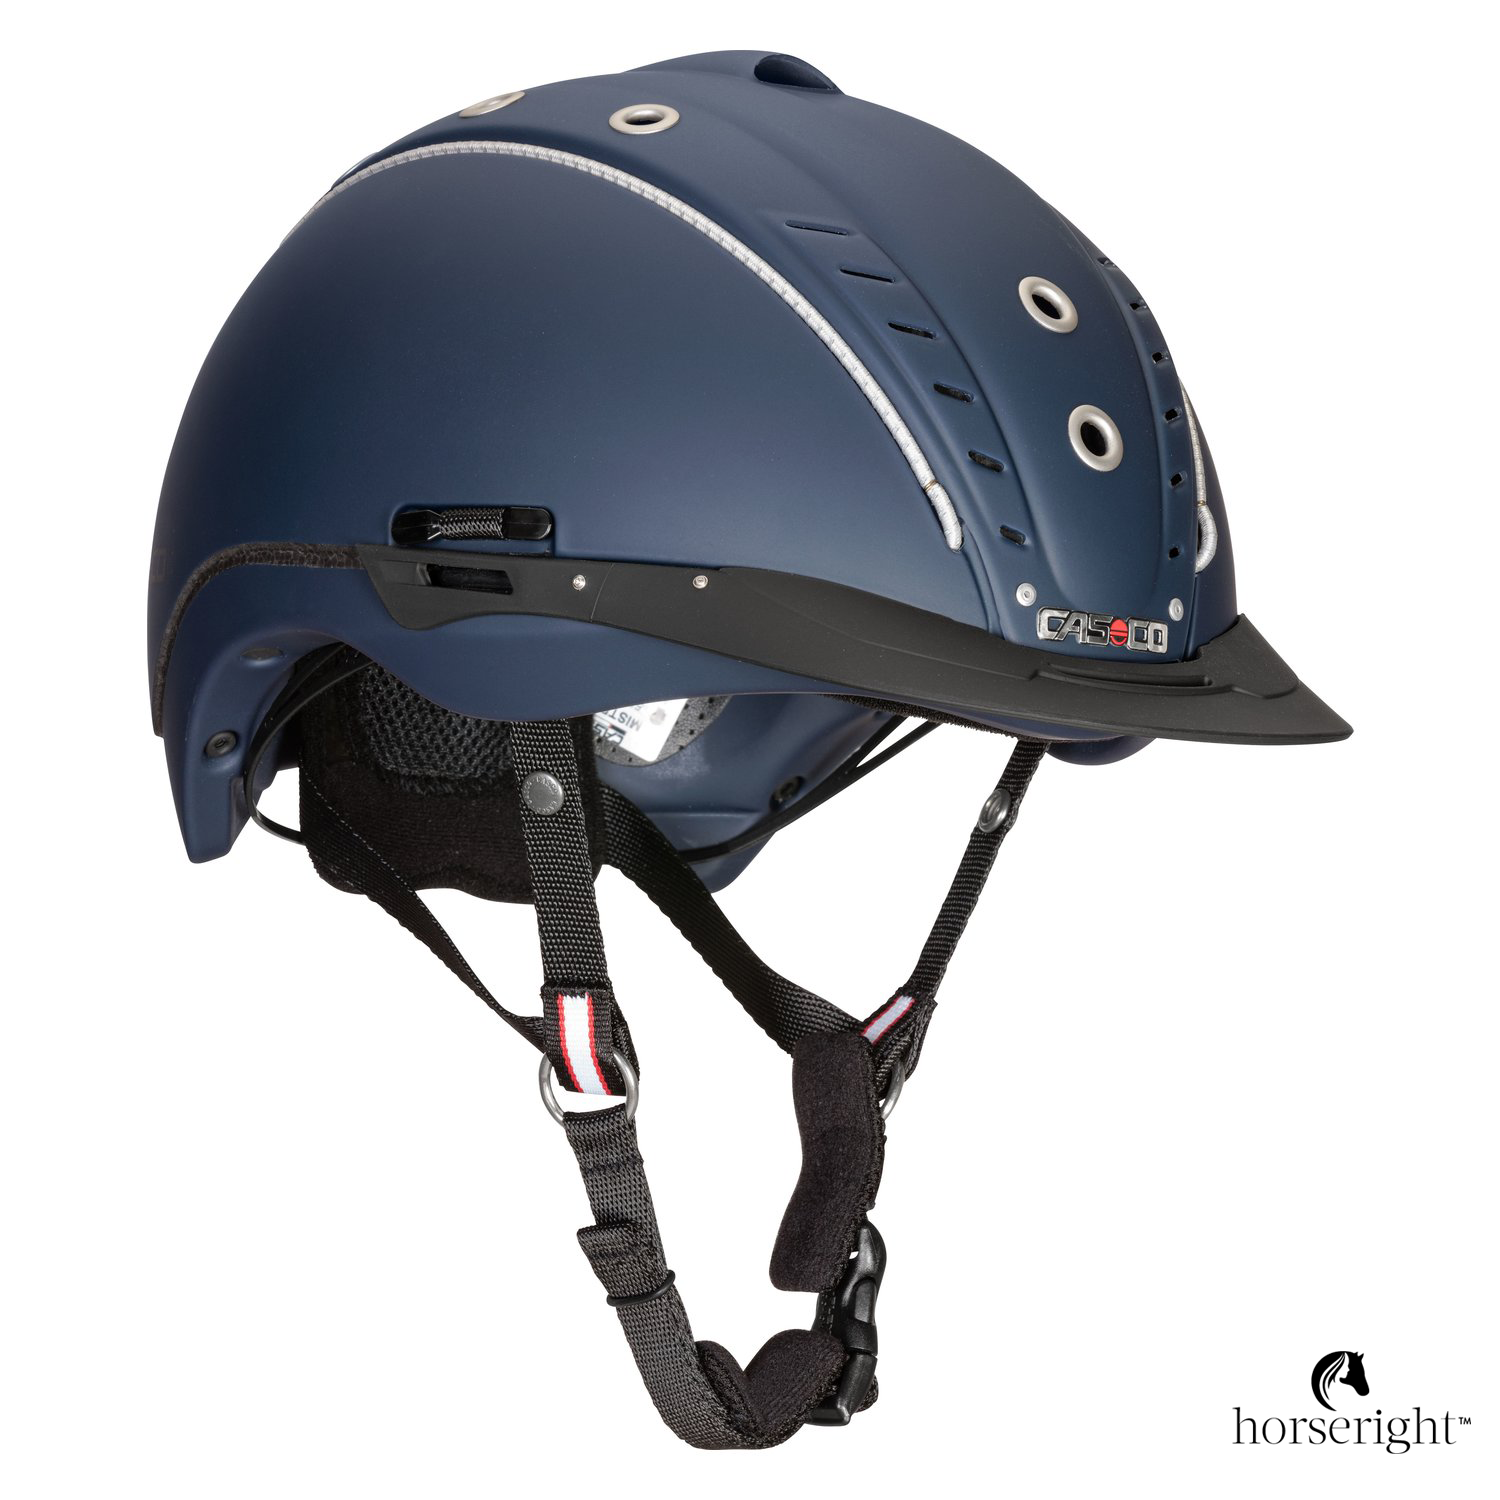 Casco Mistrall 2 Riding Helmet